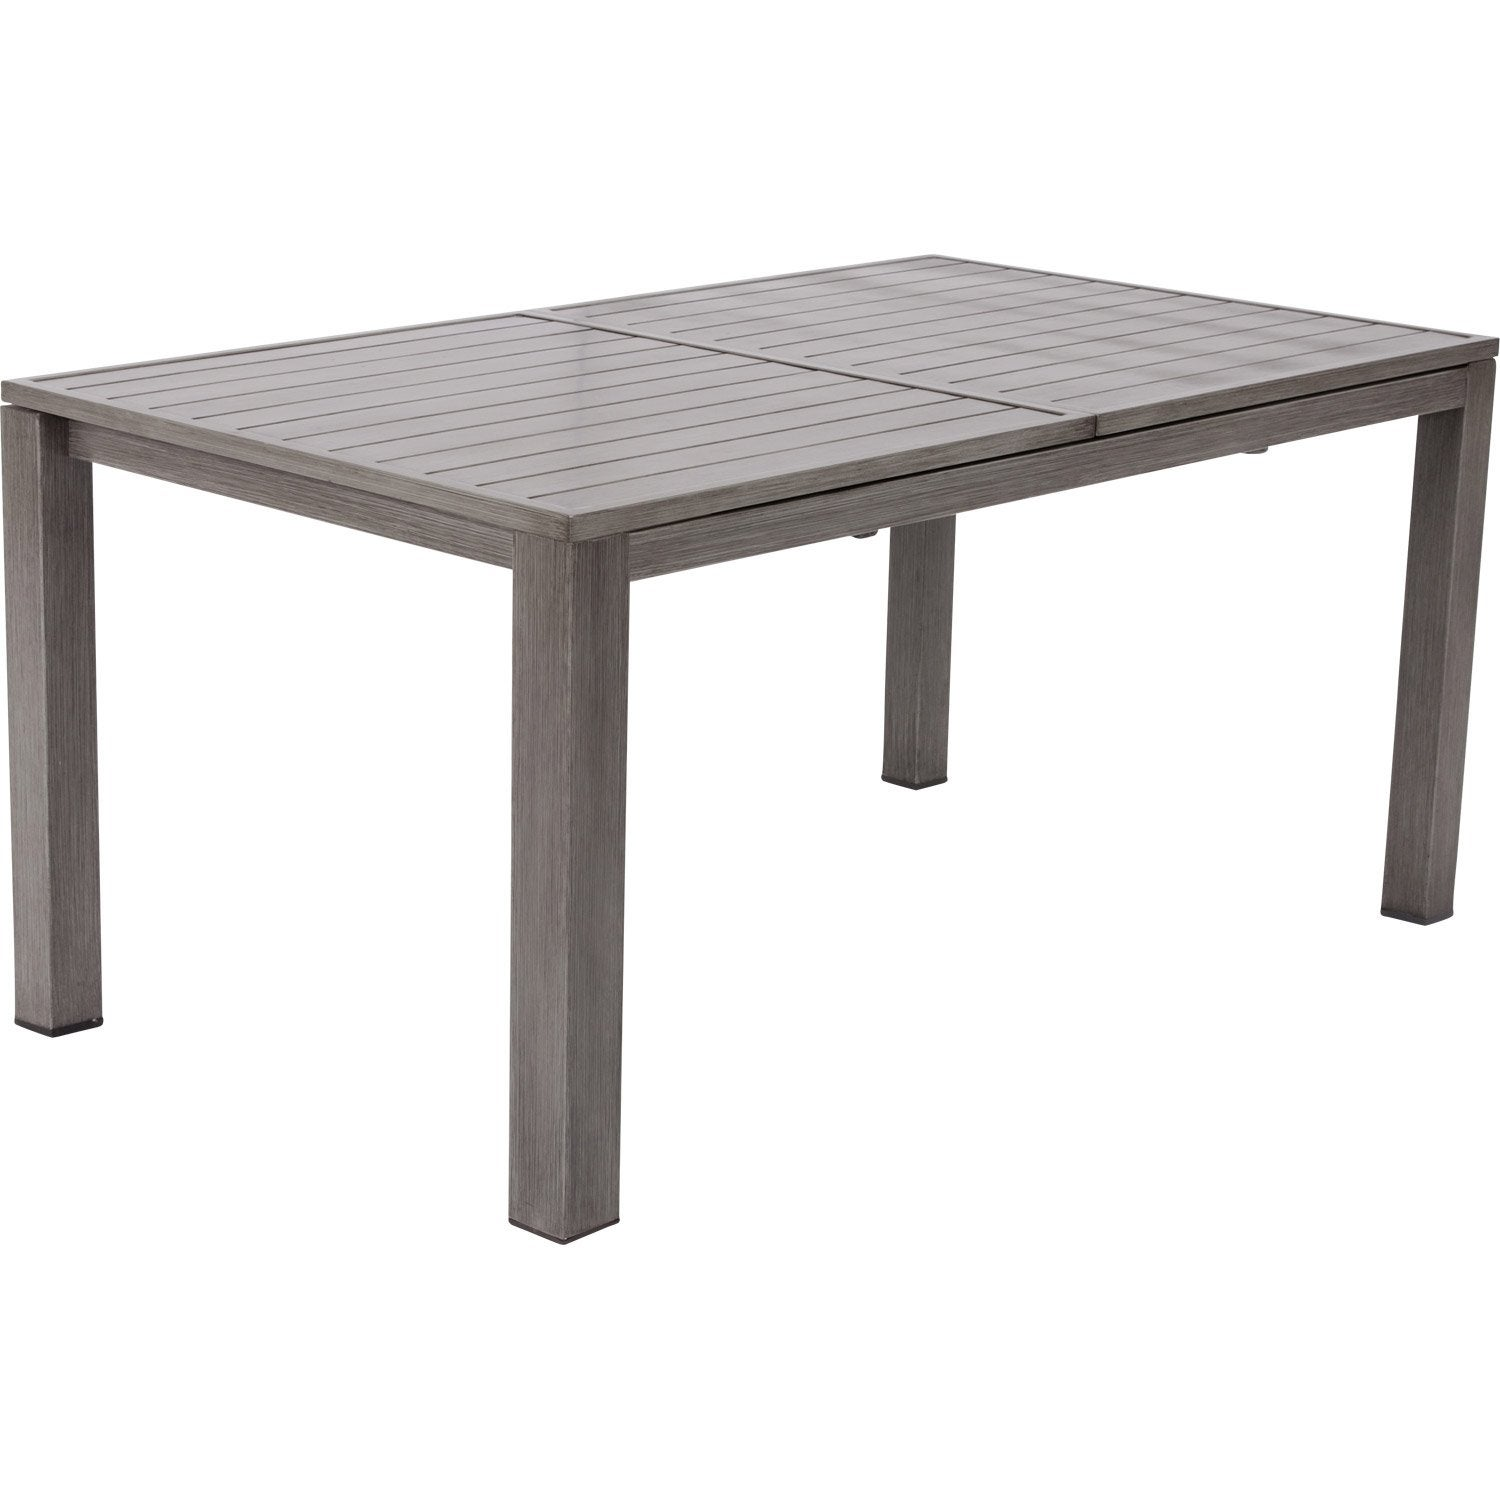 Table de jardin NATERIAL Antibes rectangulaire gris look bois 6/8 ...